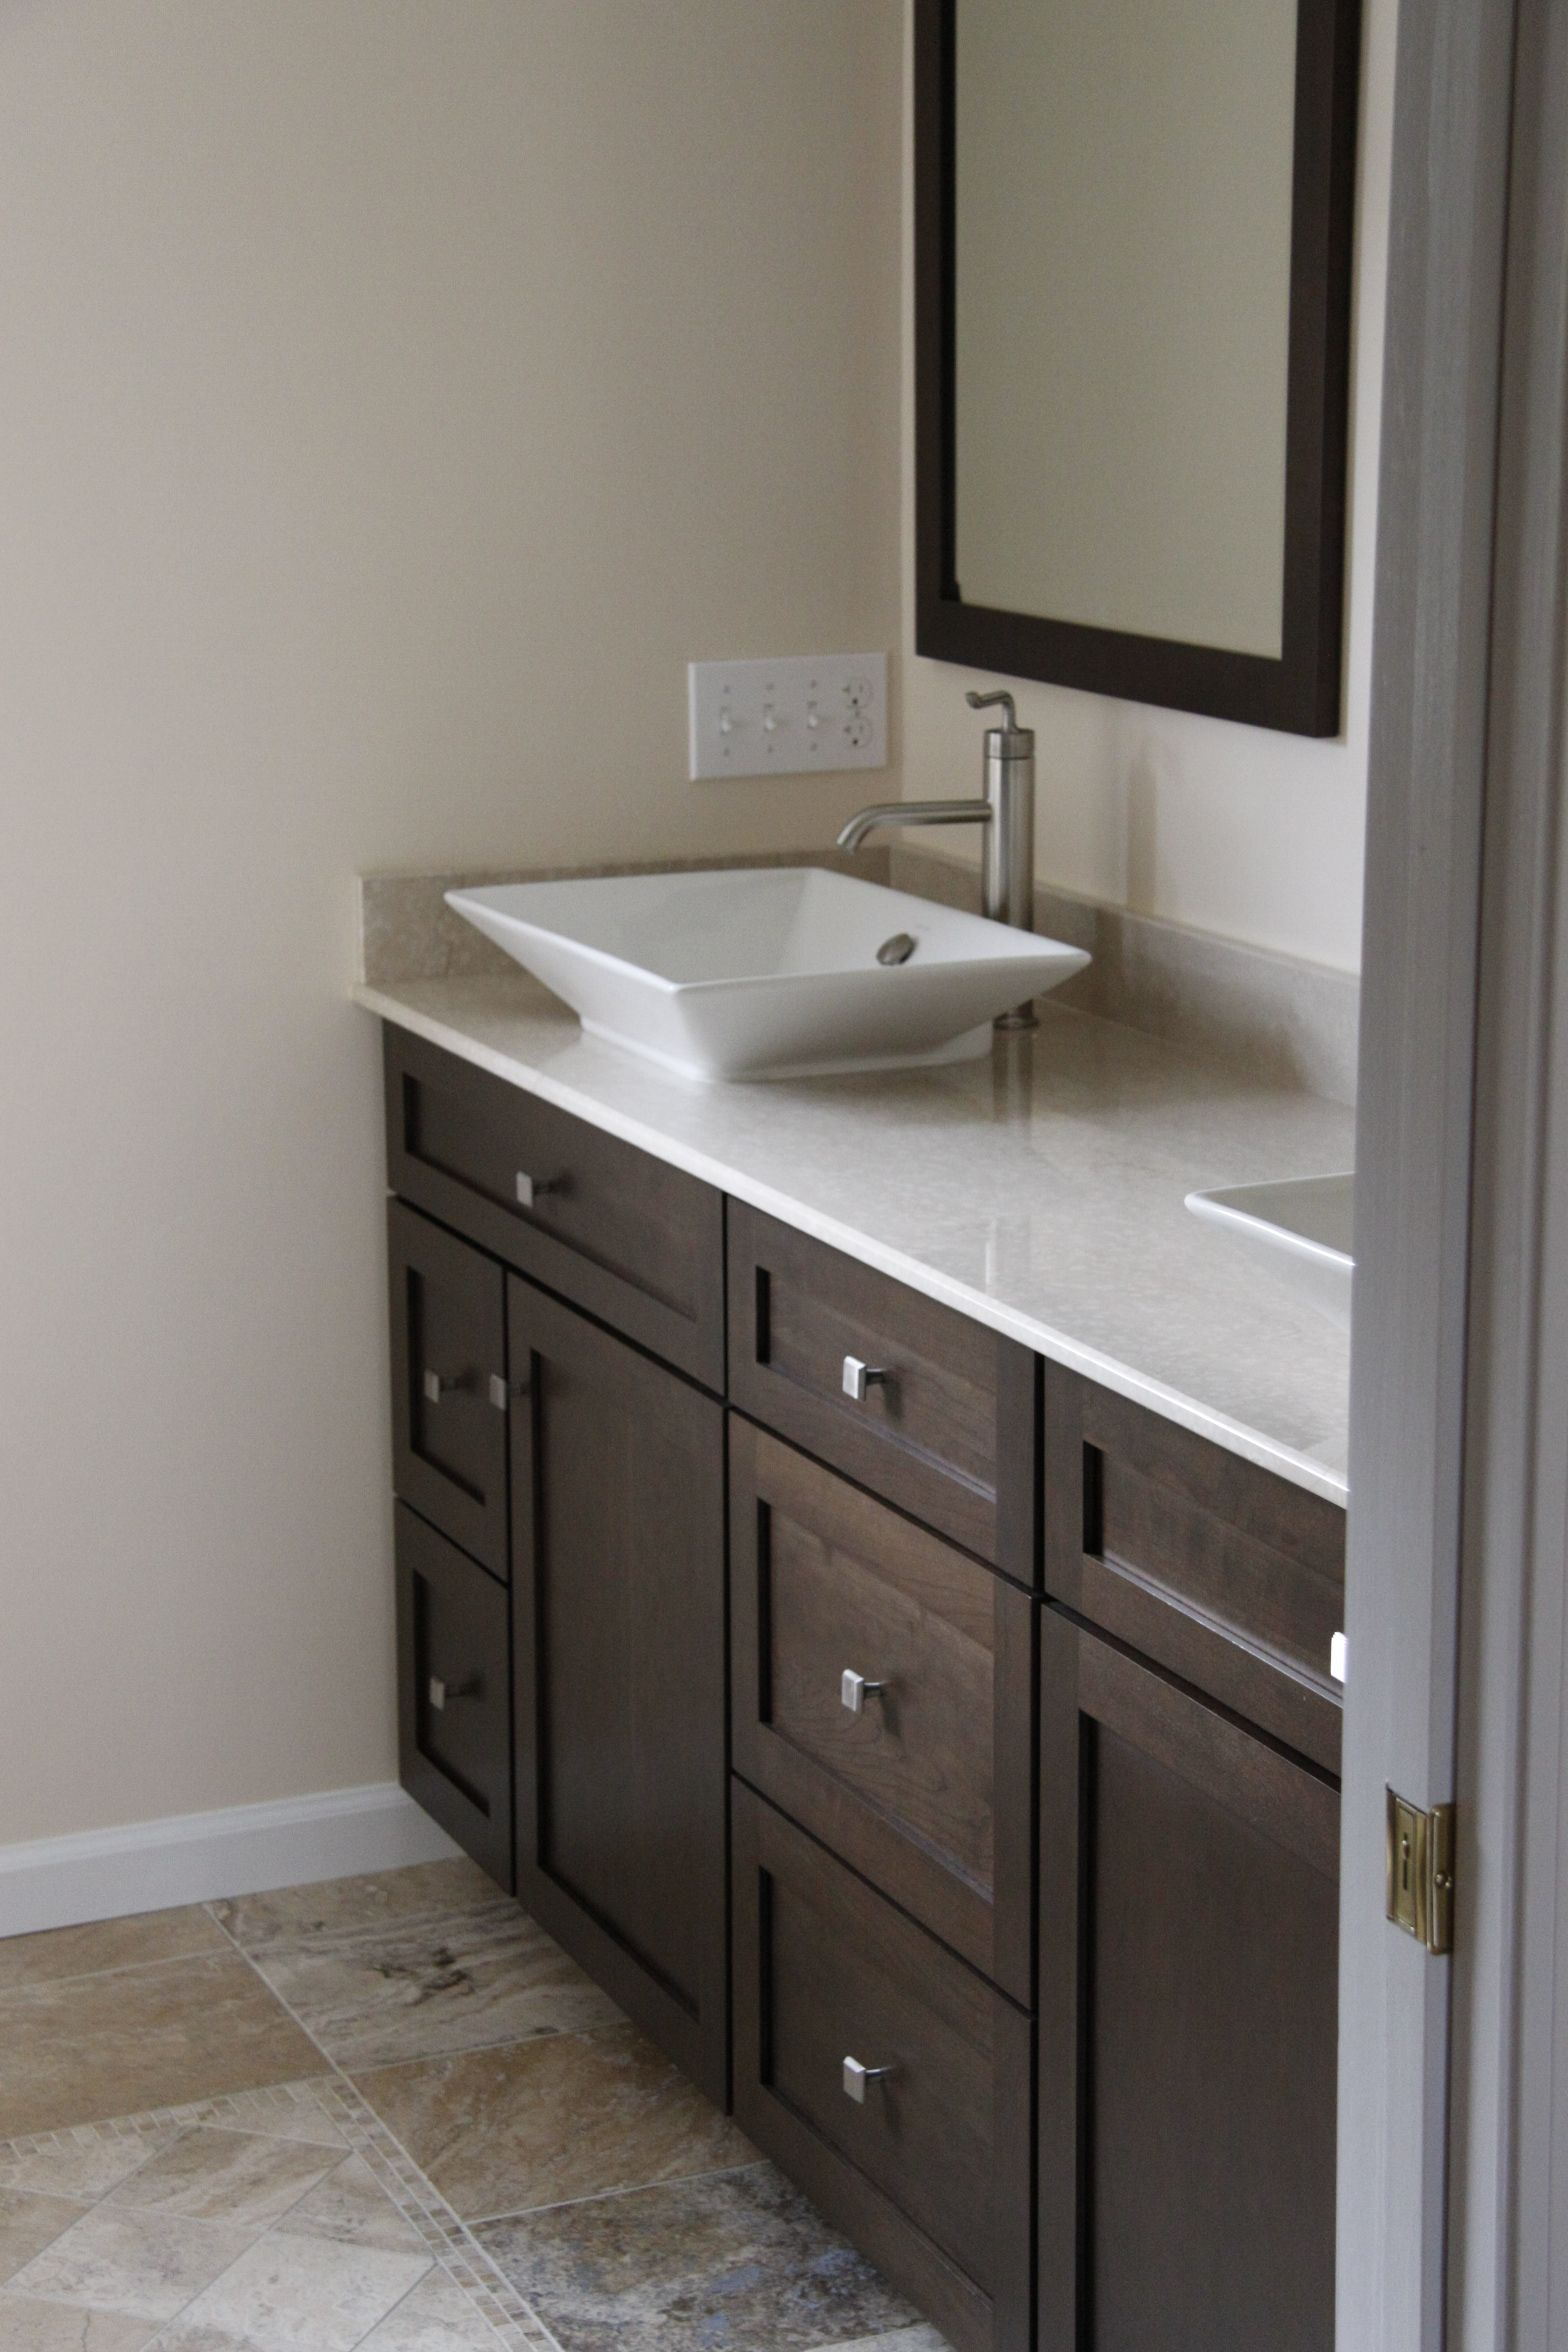 Dynasty By Omega Kitchen Cabinets From Ragonese Kitchen And Bath Vanity With Vessel S Painted Vanity Bathroom Rustic Bathroom Vanities Bathroom Vanity Designs